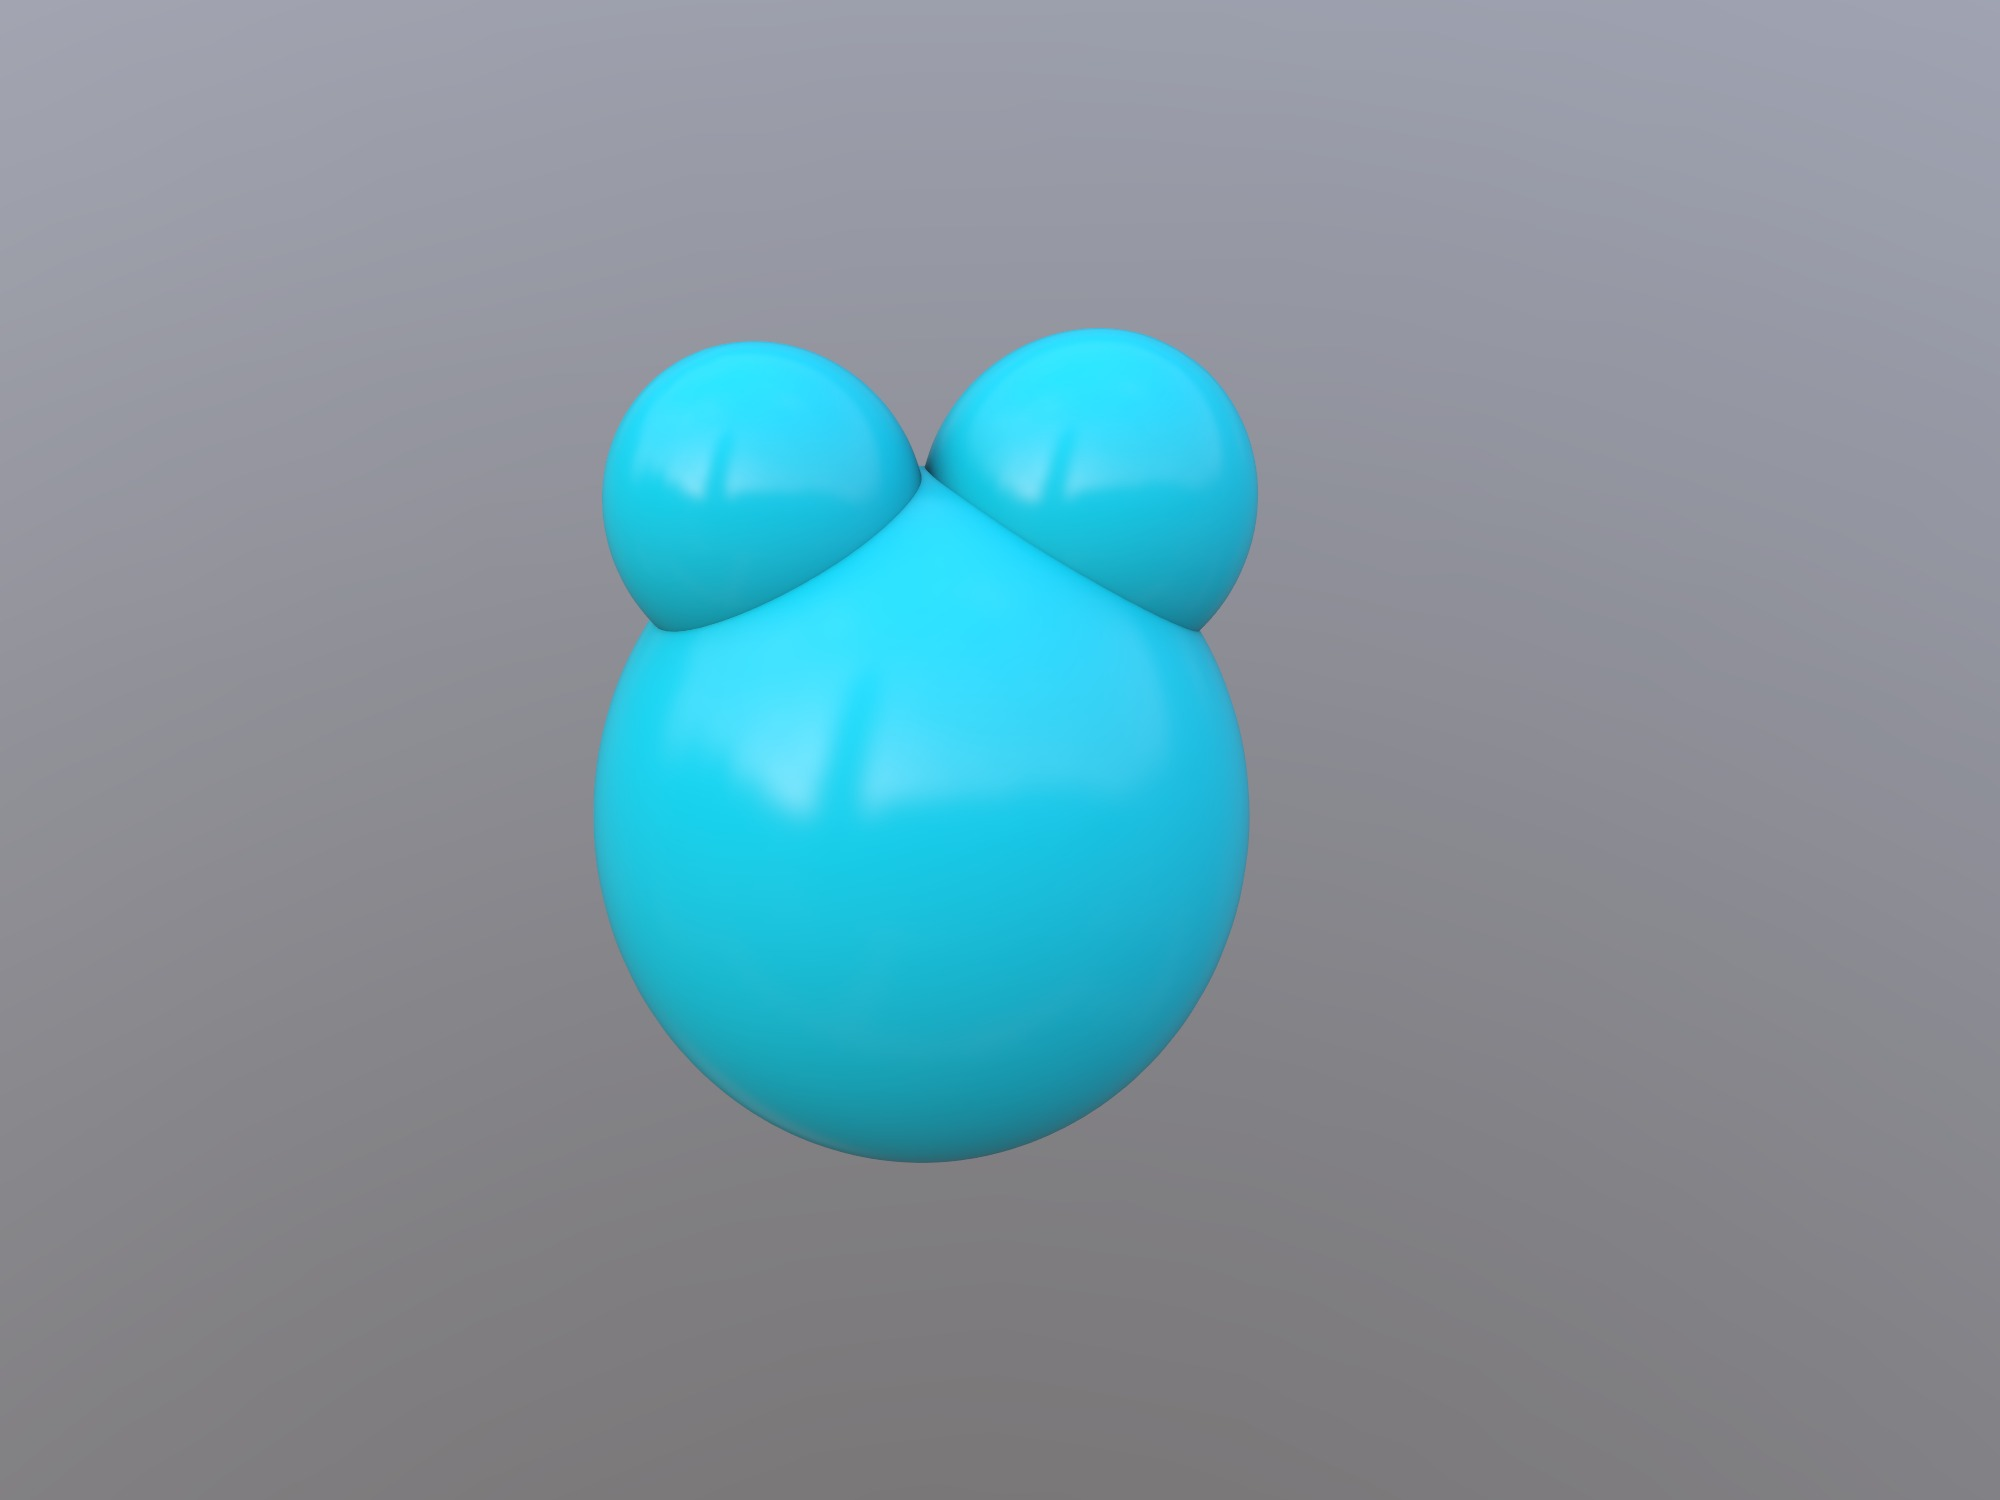 water molecule (copy) - 3D design by 970067485 on Jan 17, 2019